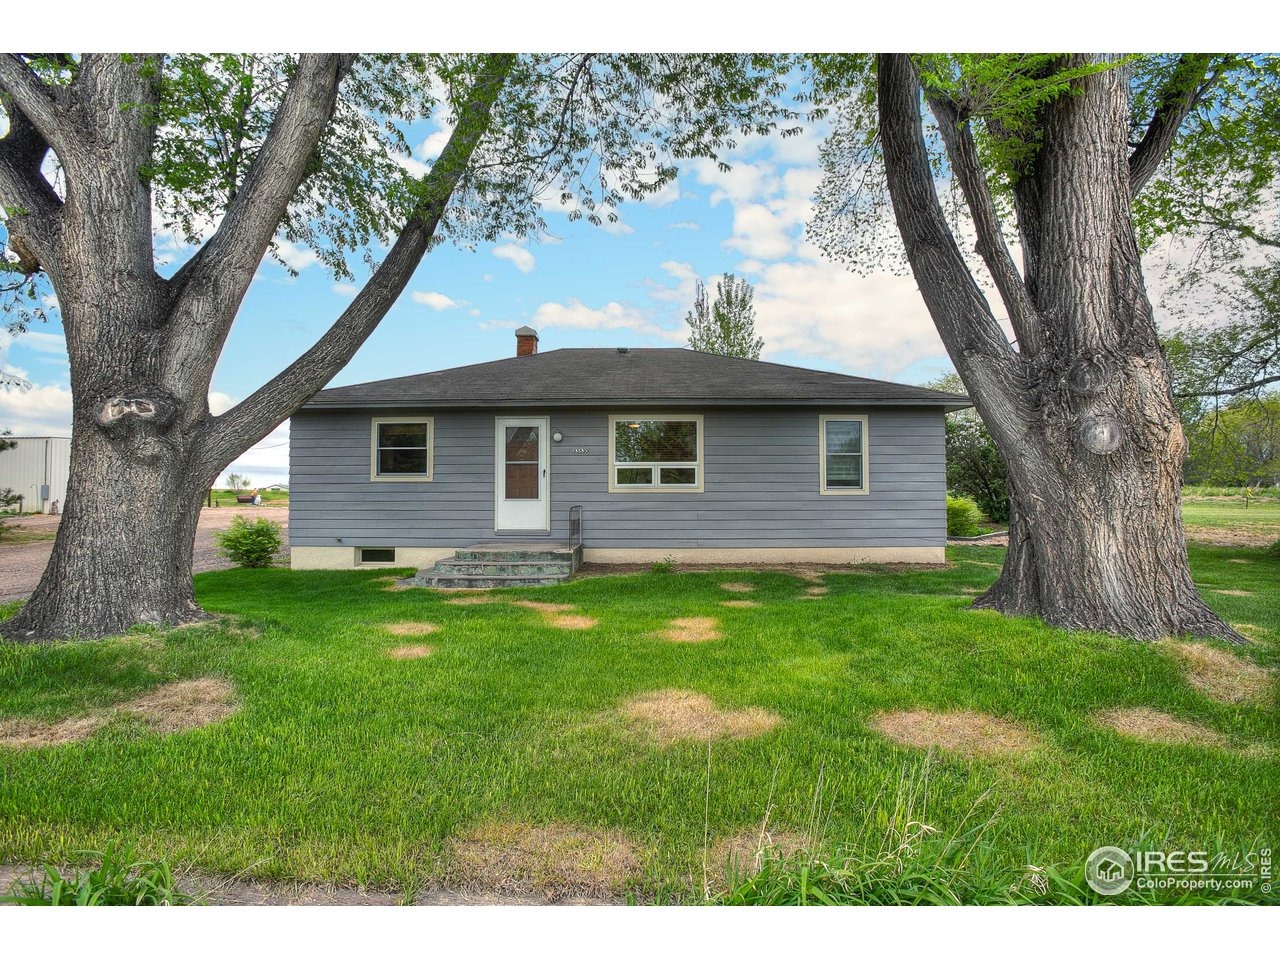 33530 County Road 25, Greeley CO 80631